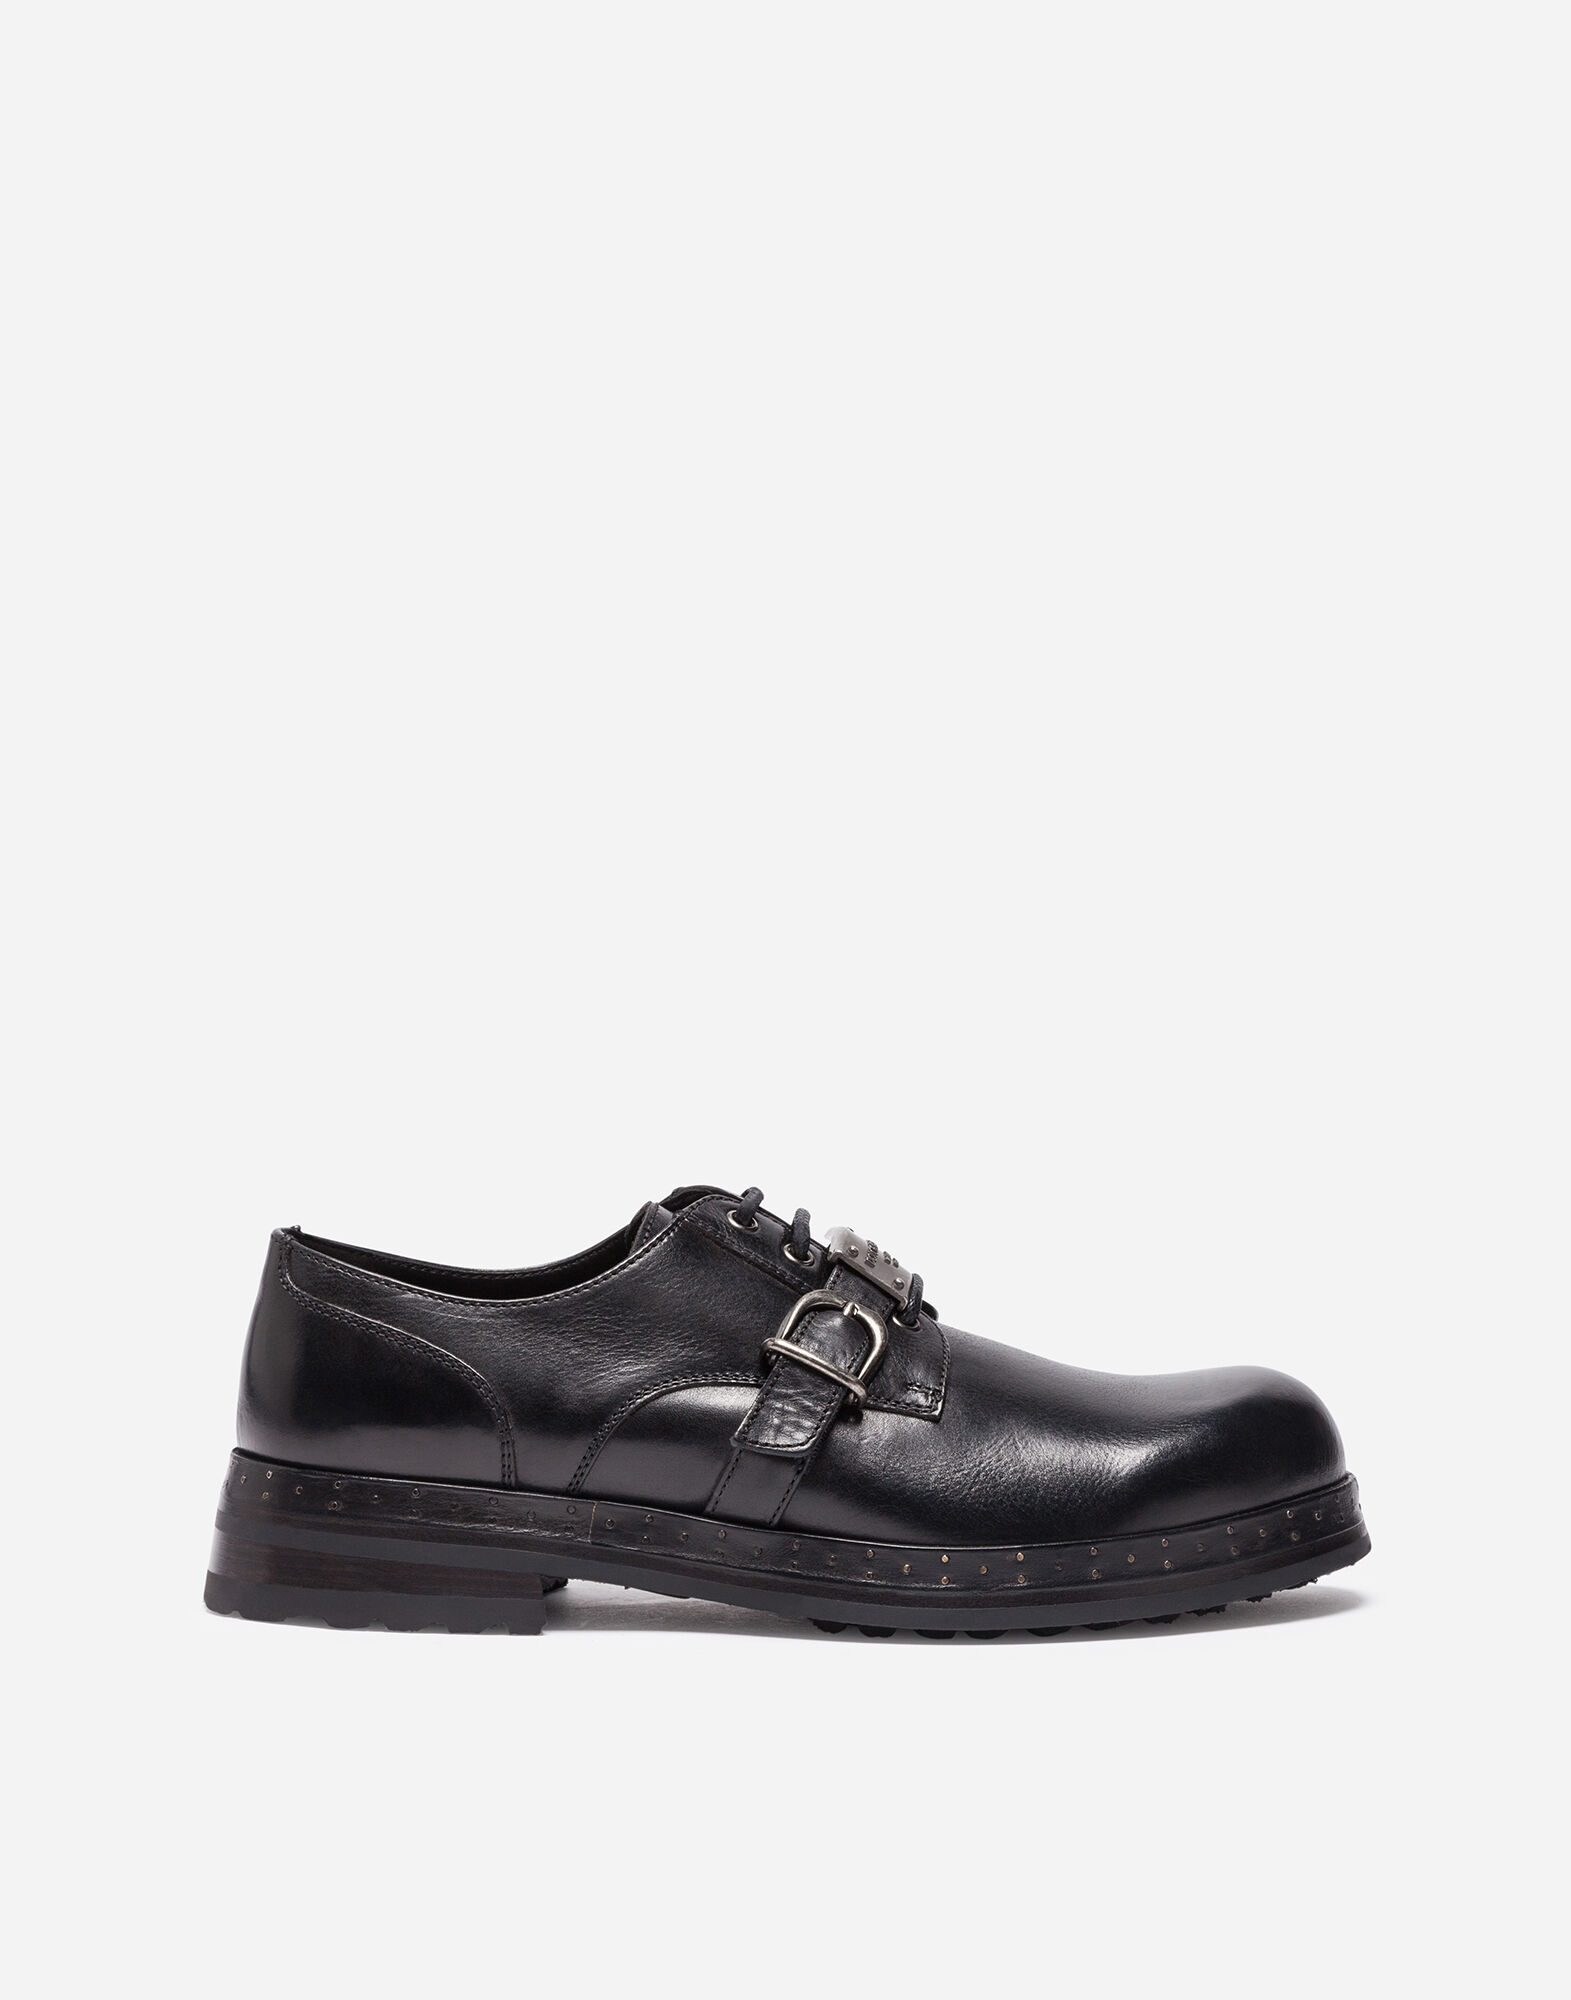 LEATHER LACE-UP SHOES WITH LOGO DETAIL